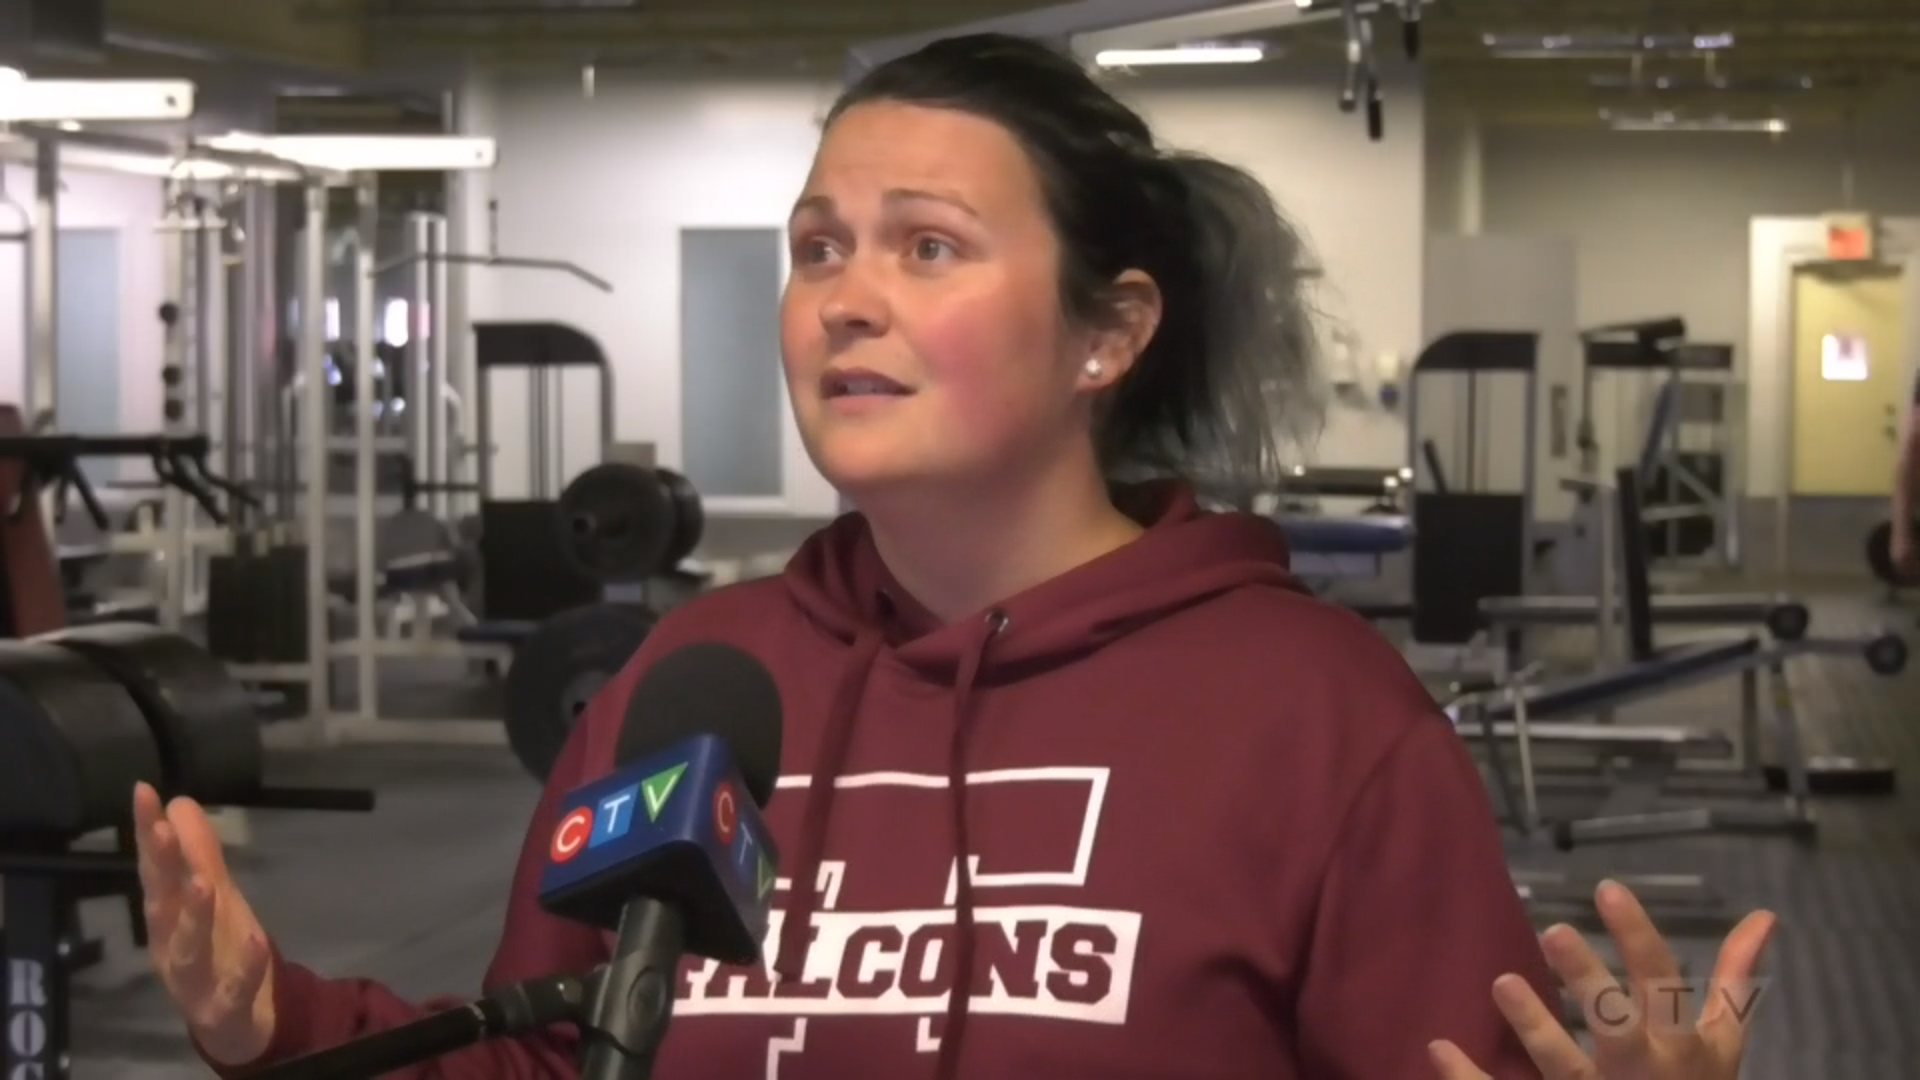 Only fully vaccinated members allowed in Timmins gym when it reopens Friday